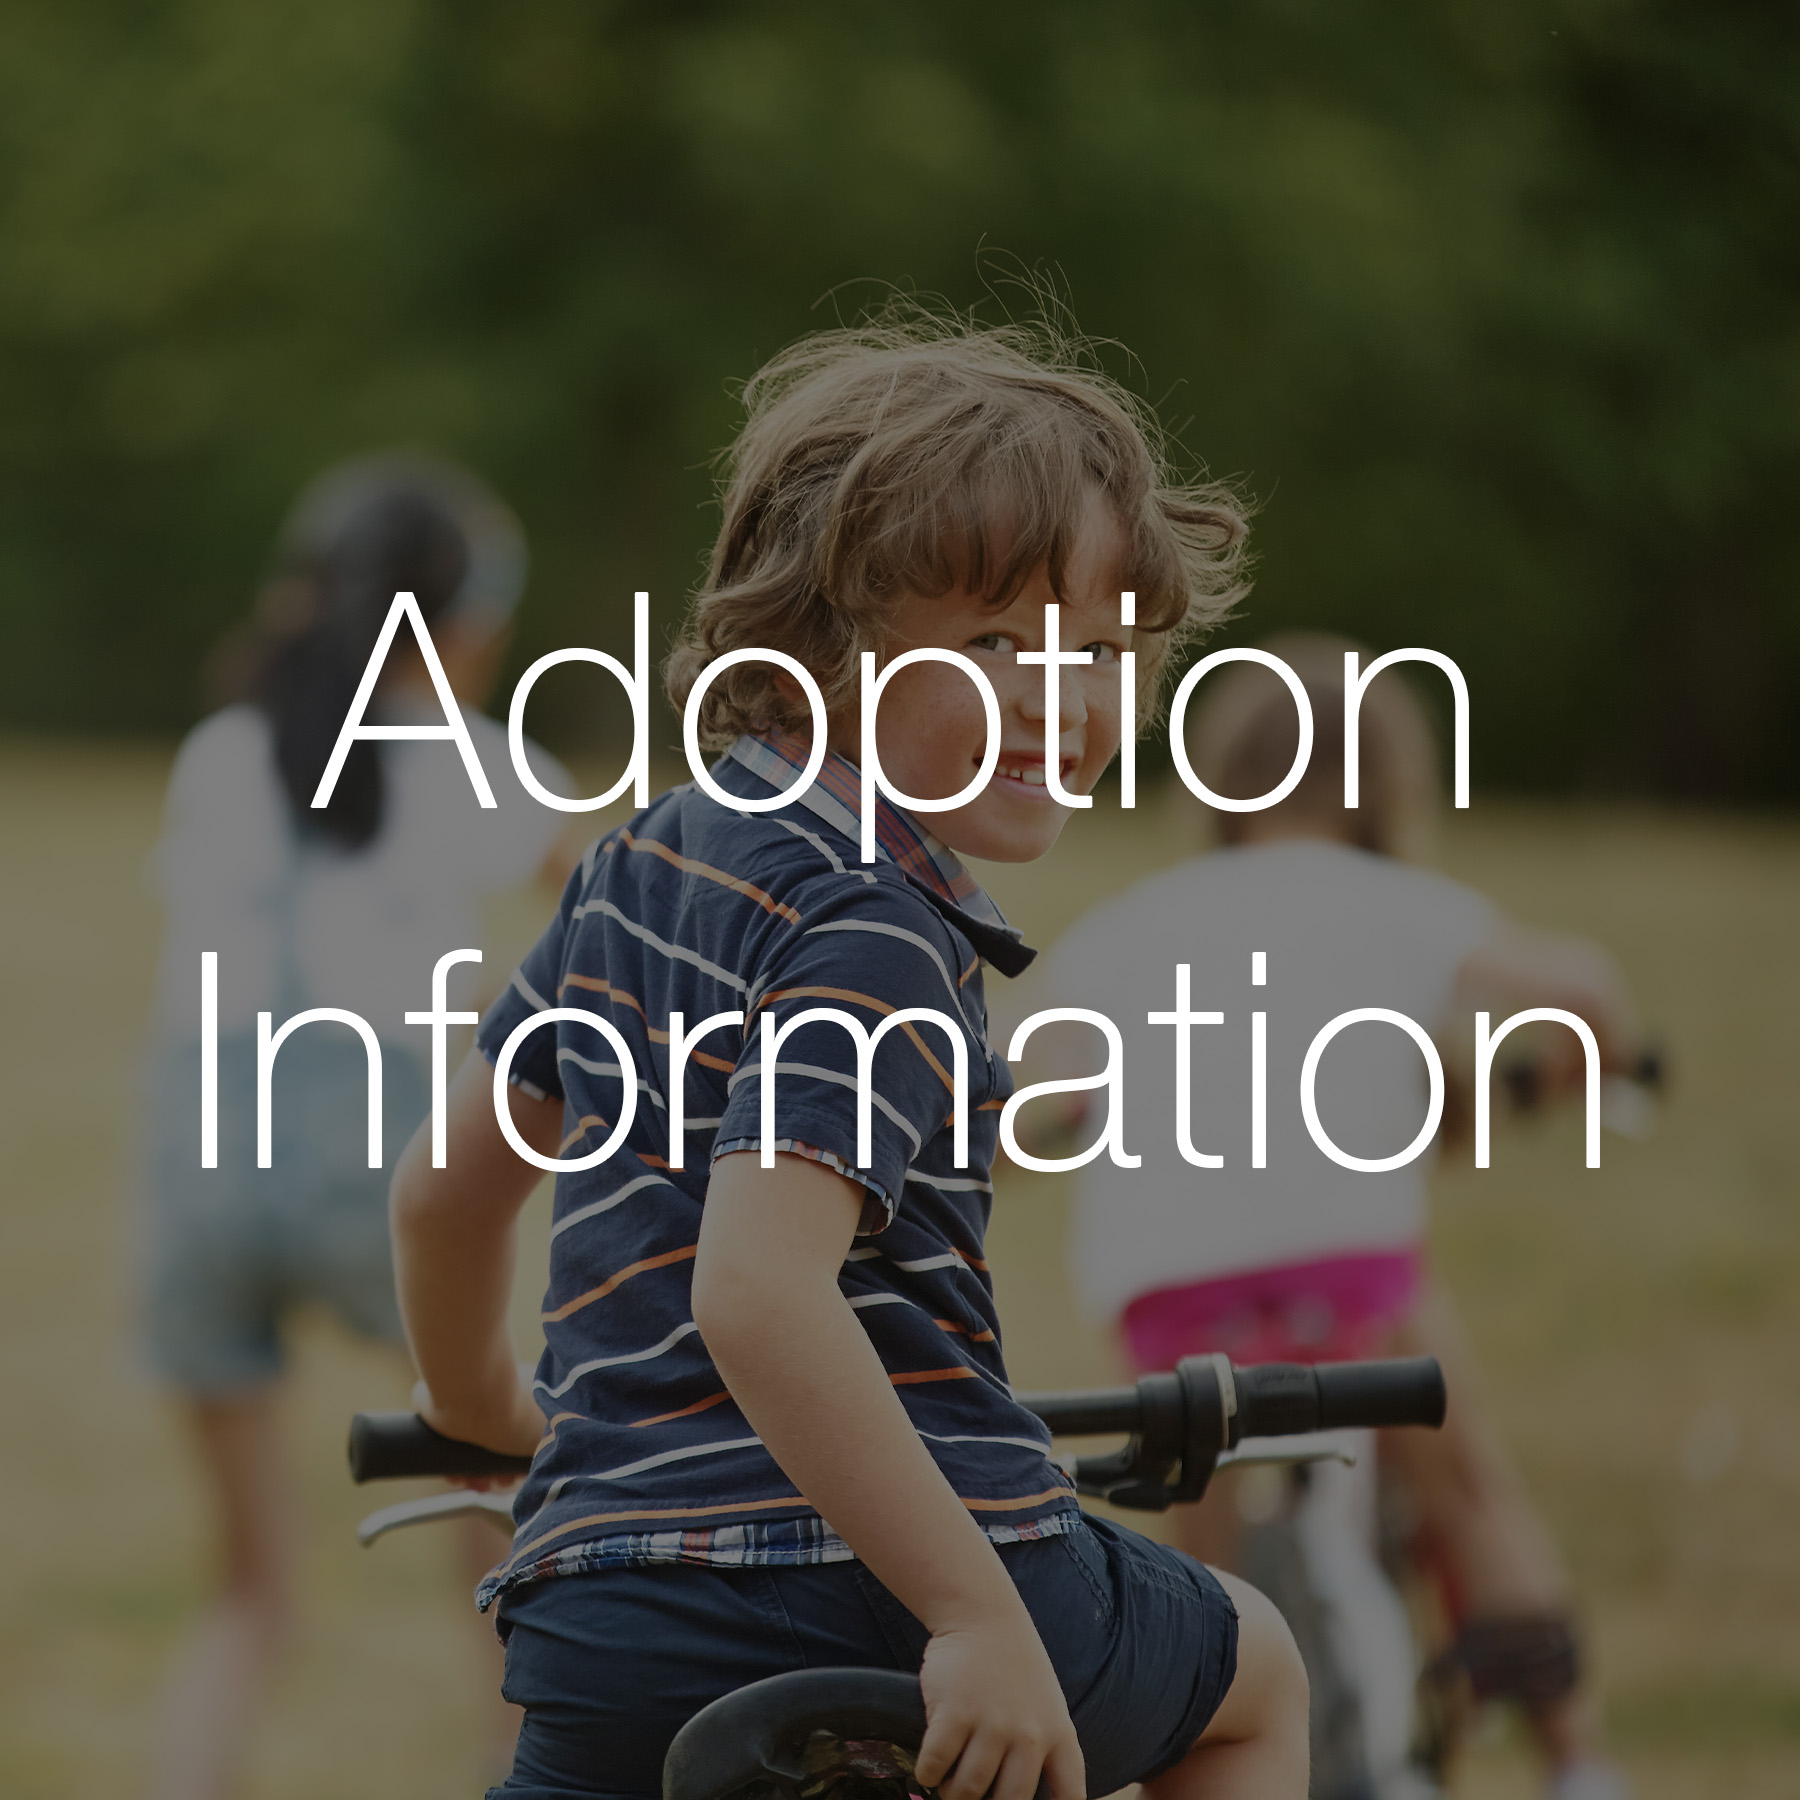 Adoption Thumbnail 2.jpg